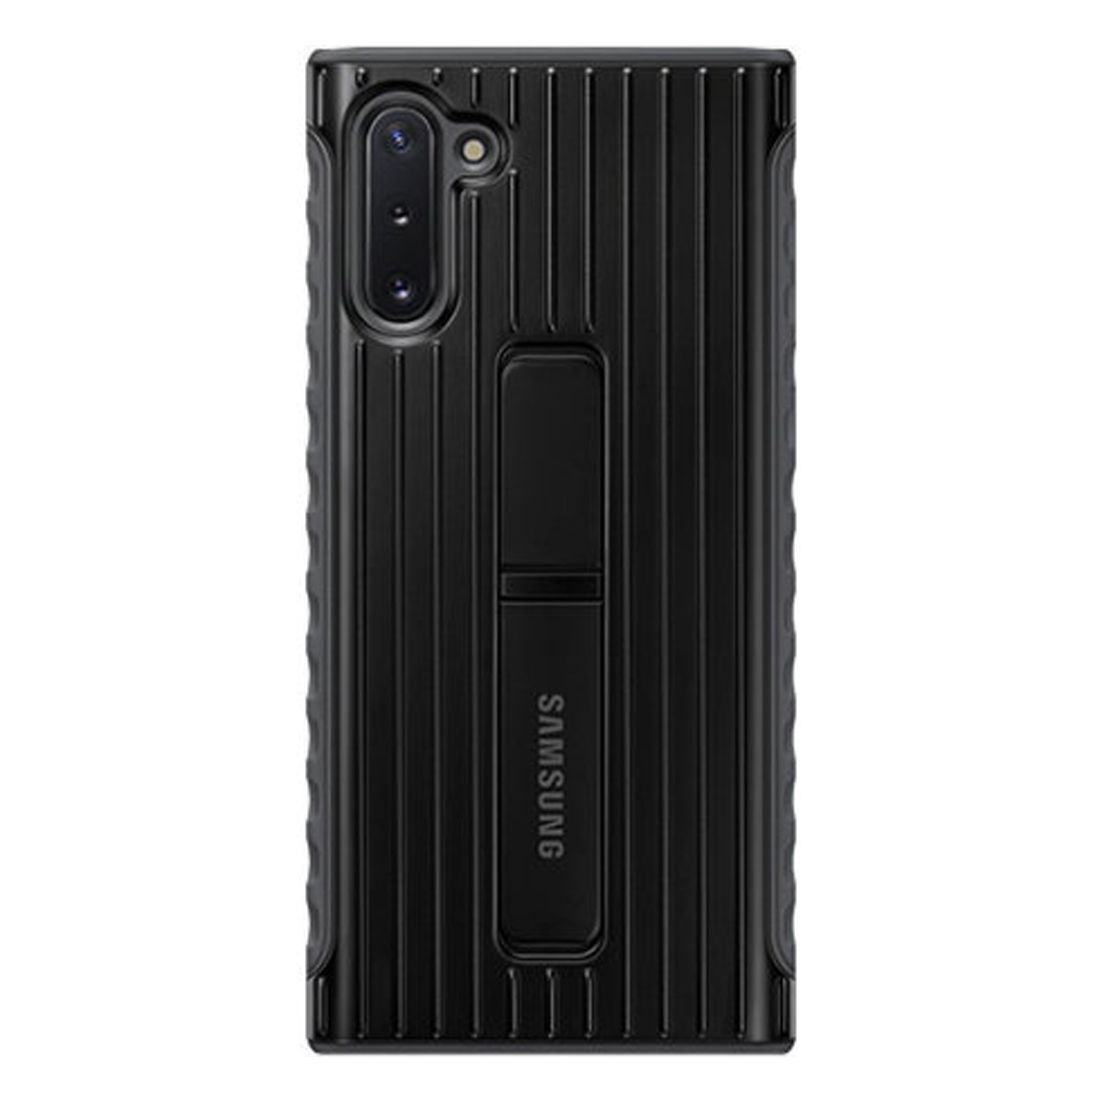 Samsung Galaxy Note 10 Protective Standing Cover - Black